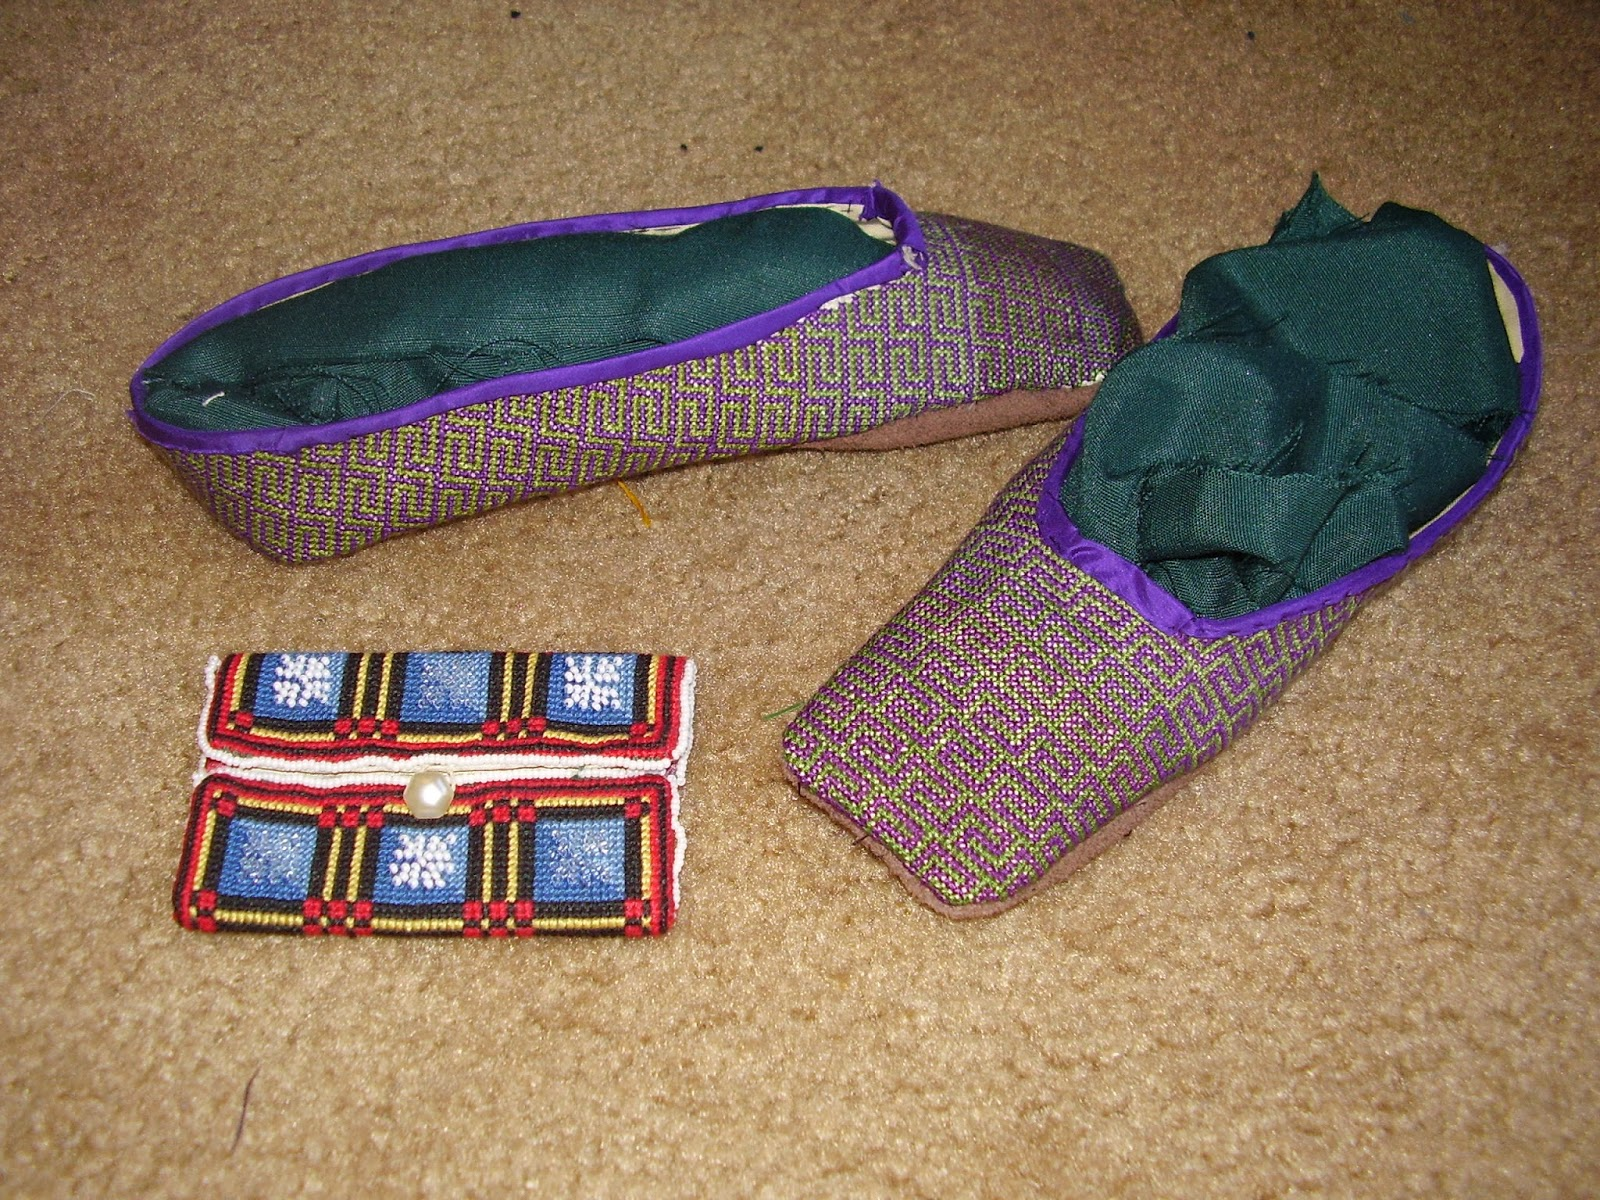 Berlin-work slippers and cardcase in Berlin-work with beads.